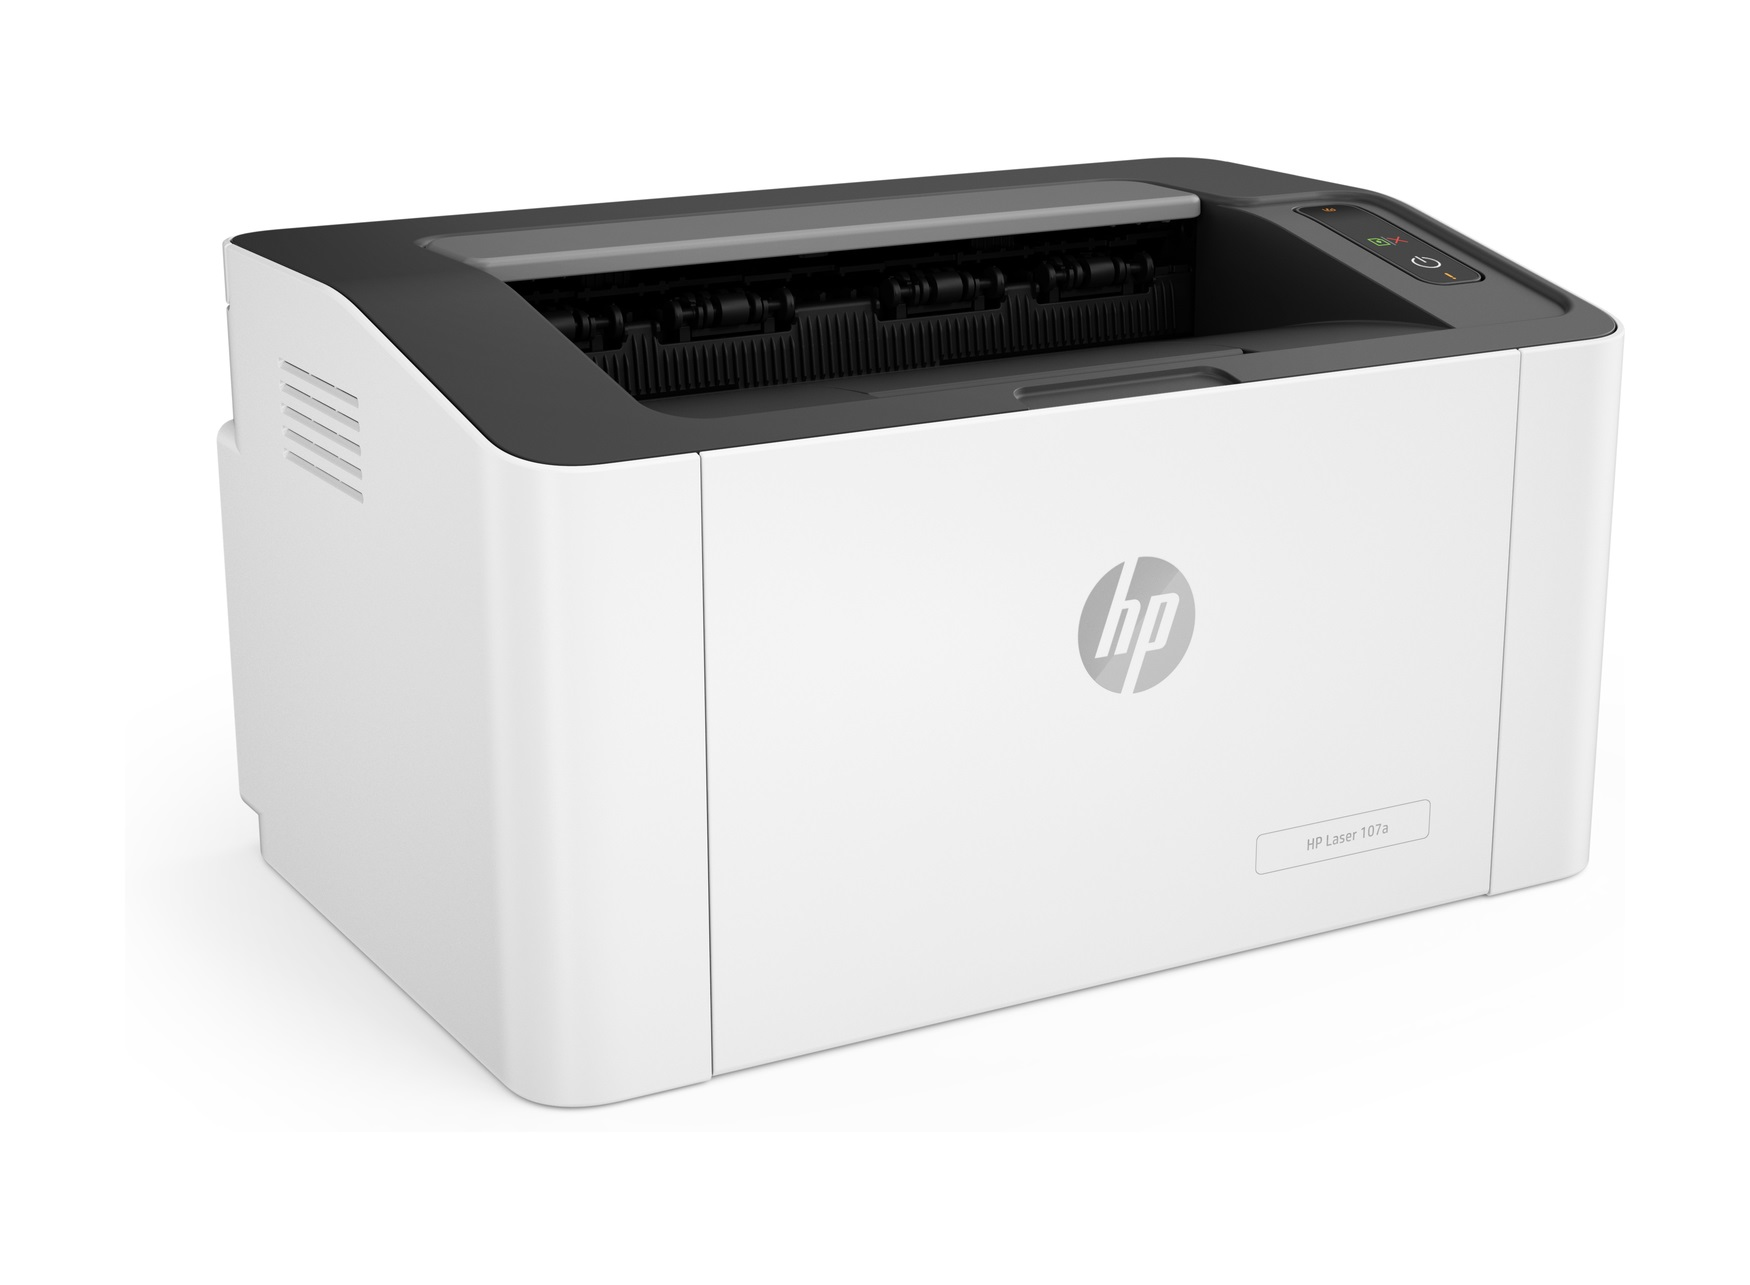 HP Laser 107w Mac Driver How to Download & Install - Featured